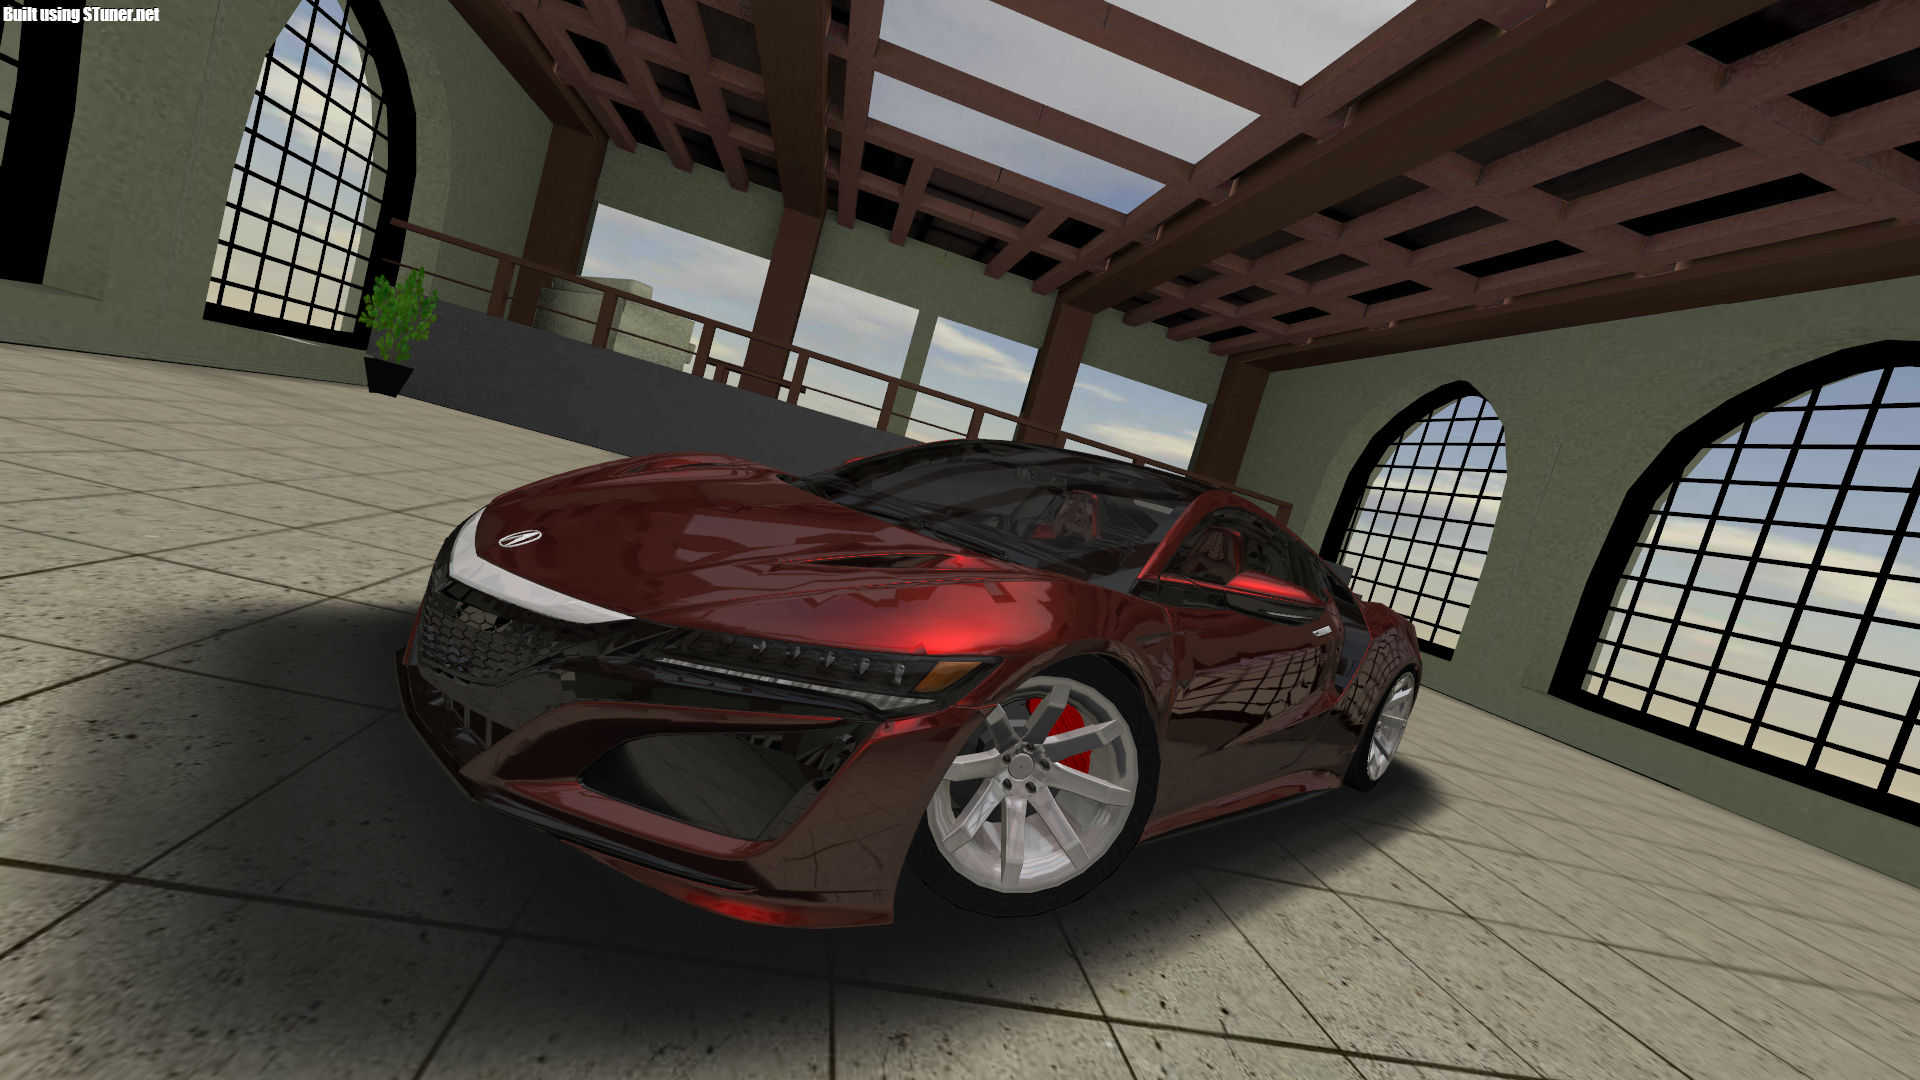 Photoshoot with a lowered NSX in S-tuner! Of course, mods